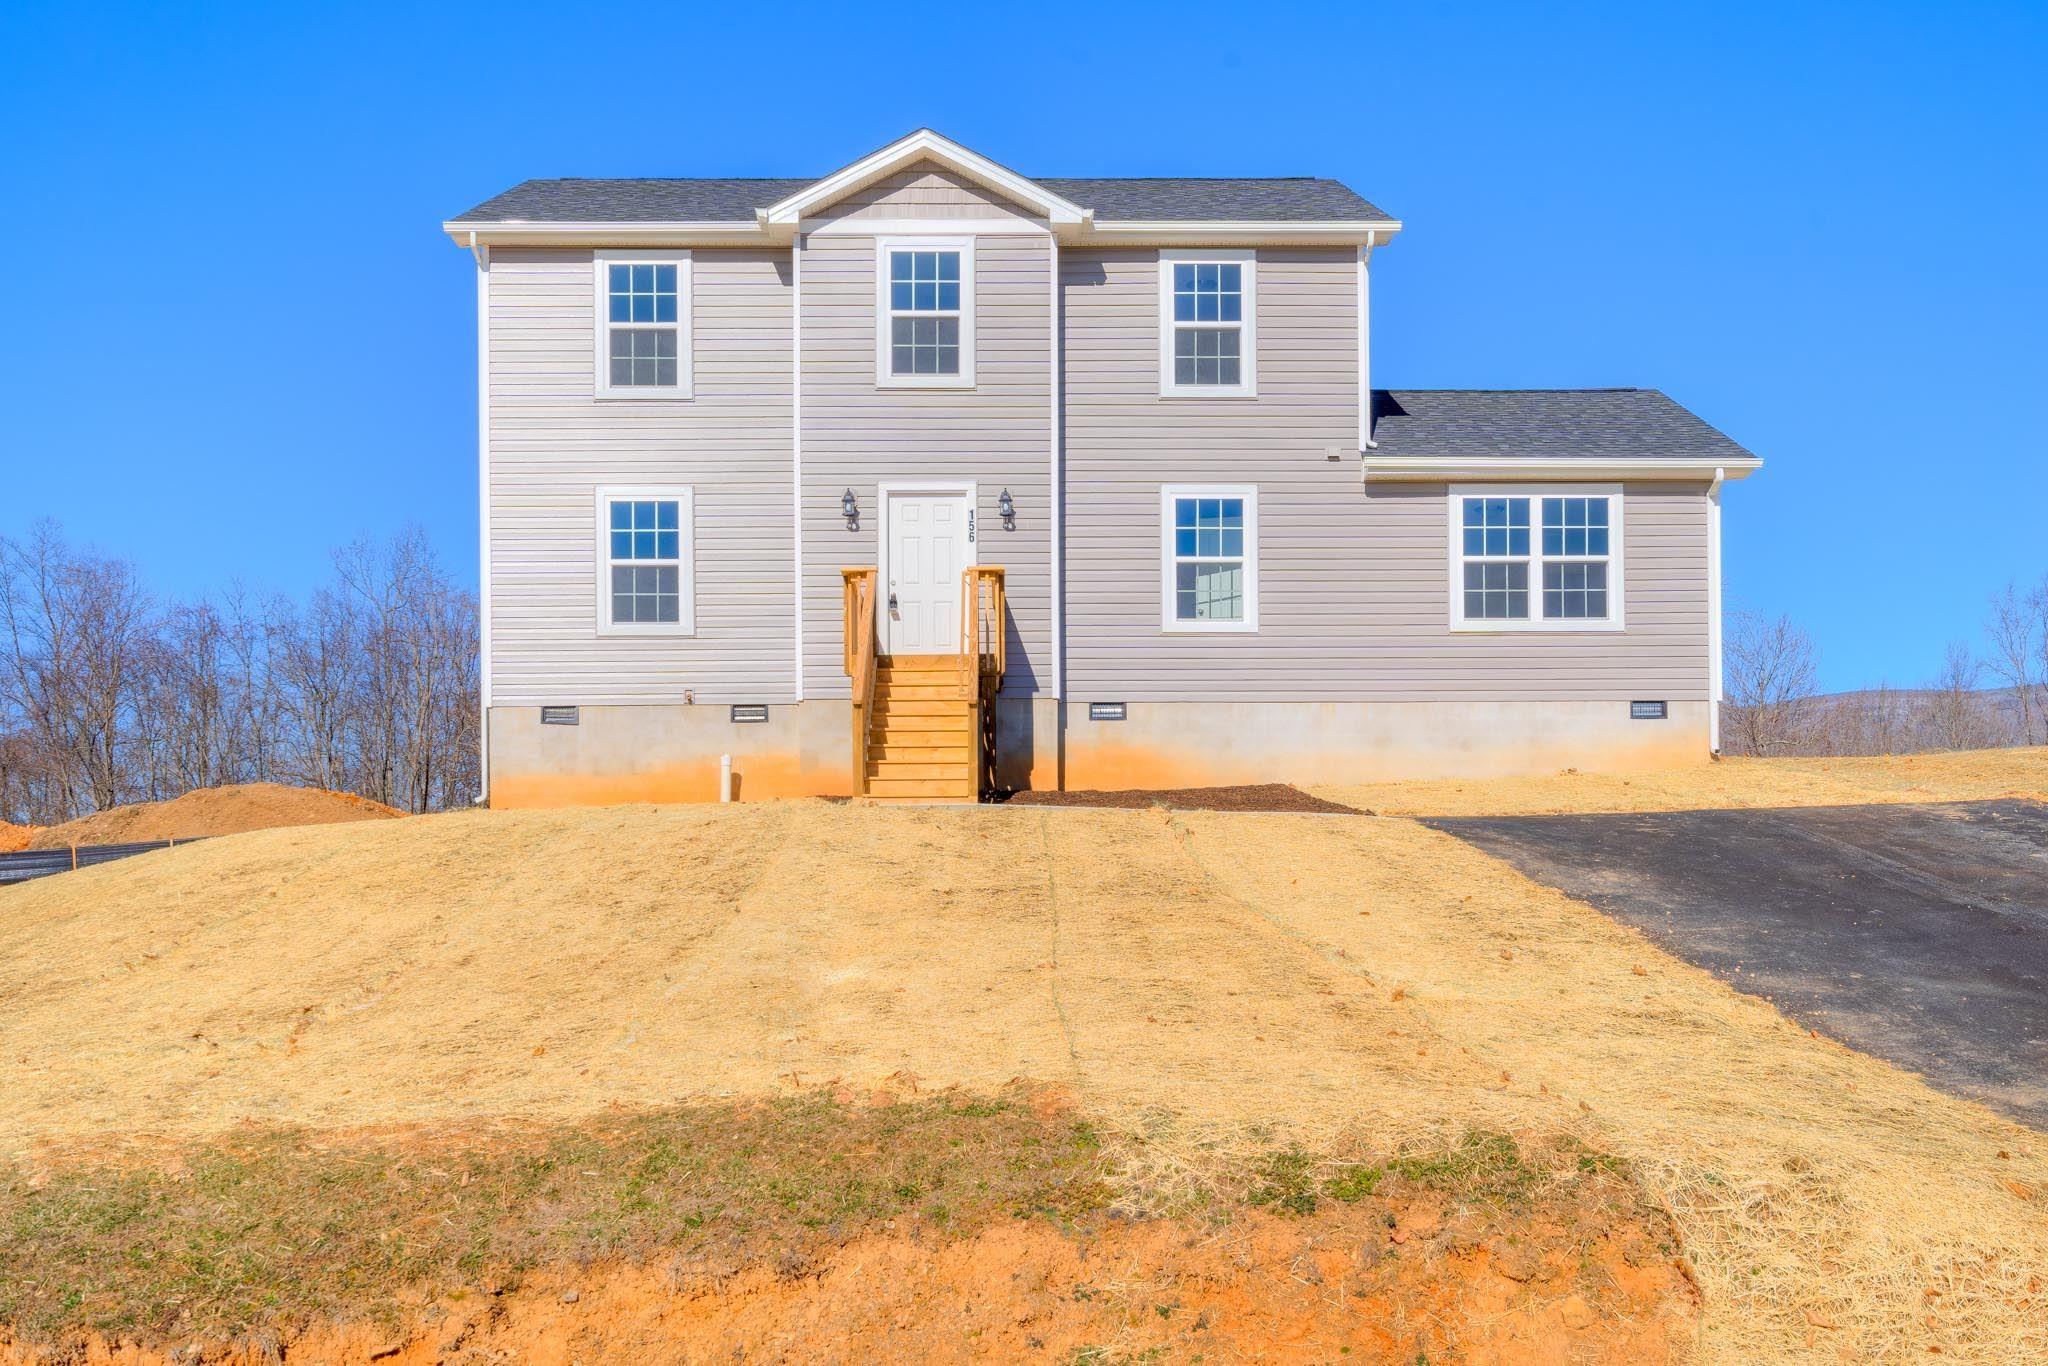 Come take a look at this brand new home with its amazing views. This home sits in one of the newest up and coming communities just 15 minutes from downtown Blacksburg. With 4 bedroom 3.5 baths there is plenty of space for you and your family. Why pay Blacksburg prices?? The neighborhood offers a walking trail, picnic shelter. Great Views! Come watch the sunset over the mountains. Never mow the Grass again, Live in this Maintenance Free Neighborhood w/22 Acres of Common Land, 2 Picnic Shelters,Playground,Basketball Court,Pond,Walking Trails & more!Located only 12 miles to Virginia Tech(VT) Pond is next to 1 of 2 Picnic Shelters & Picnic Shelter has a Fireplace for entertaining Guests & Picnic Tables. Buy now and chose all your colors.